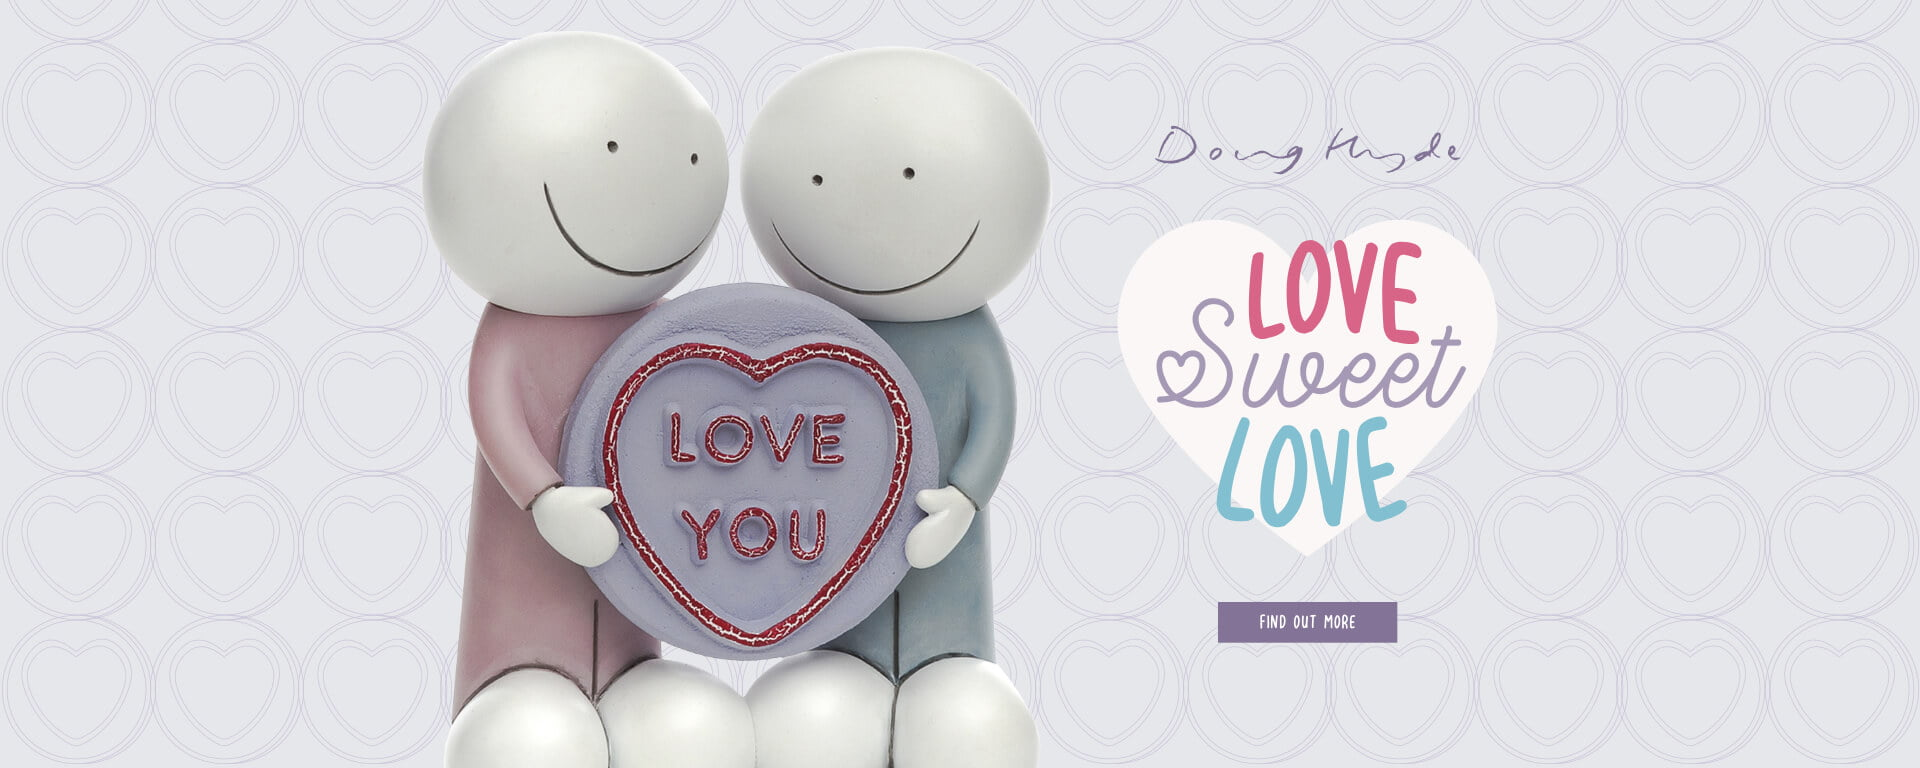 Love Sweet Love by Doug Hyde